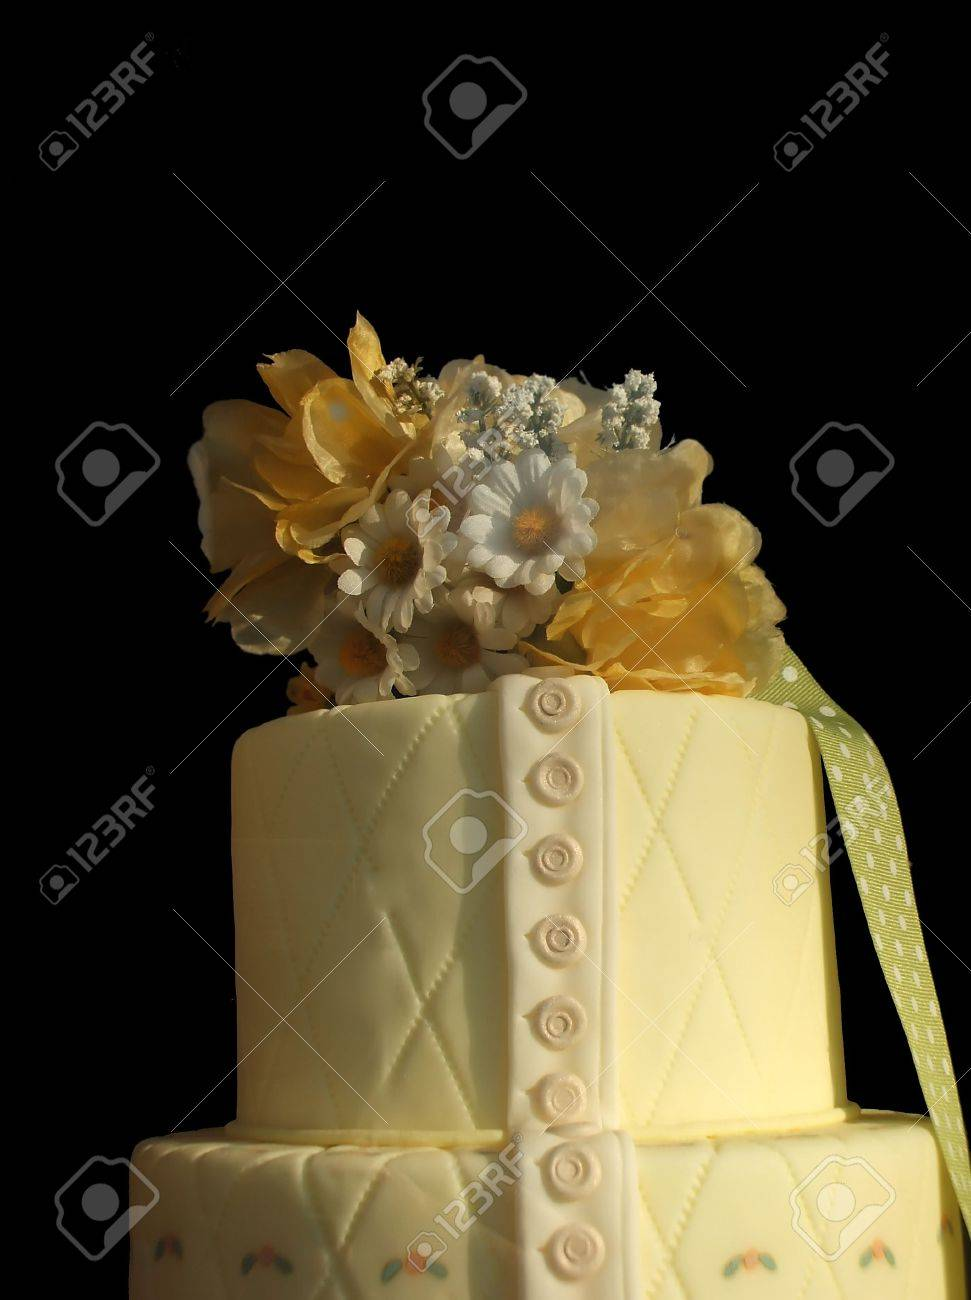 Elaborate Pastel Yellow Floral Cake Isolated Over Black Background Stock Photo - 2685420